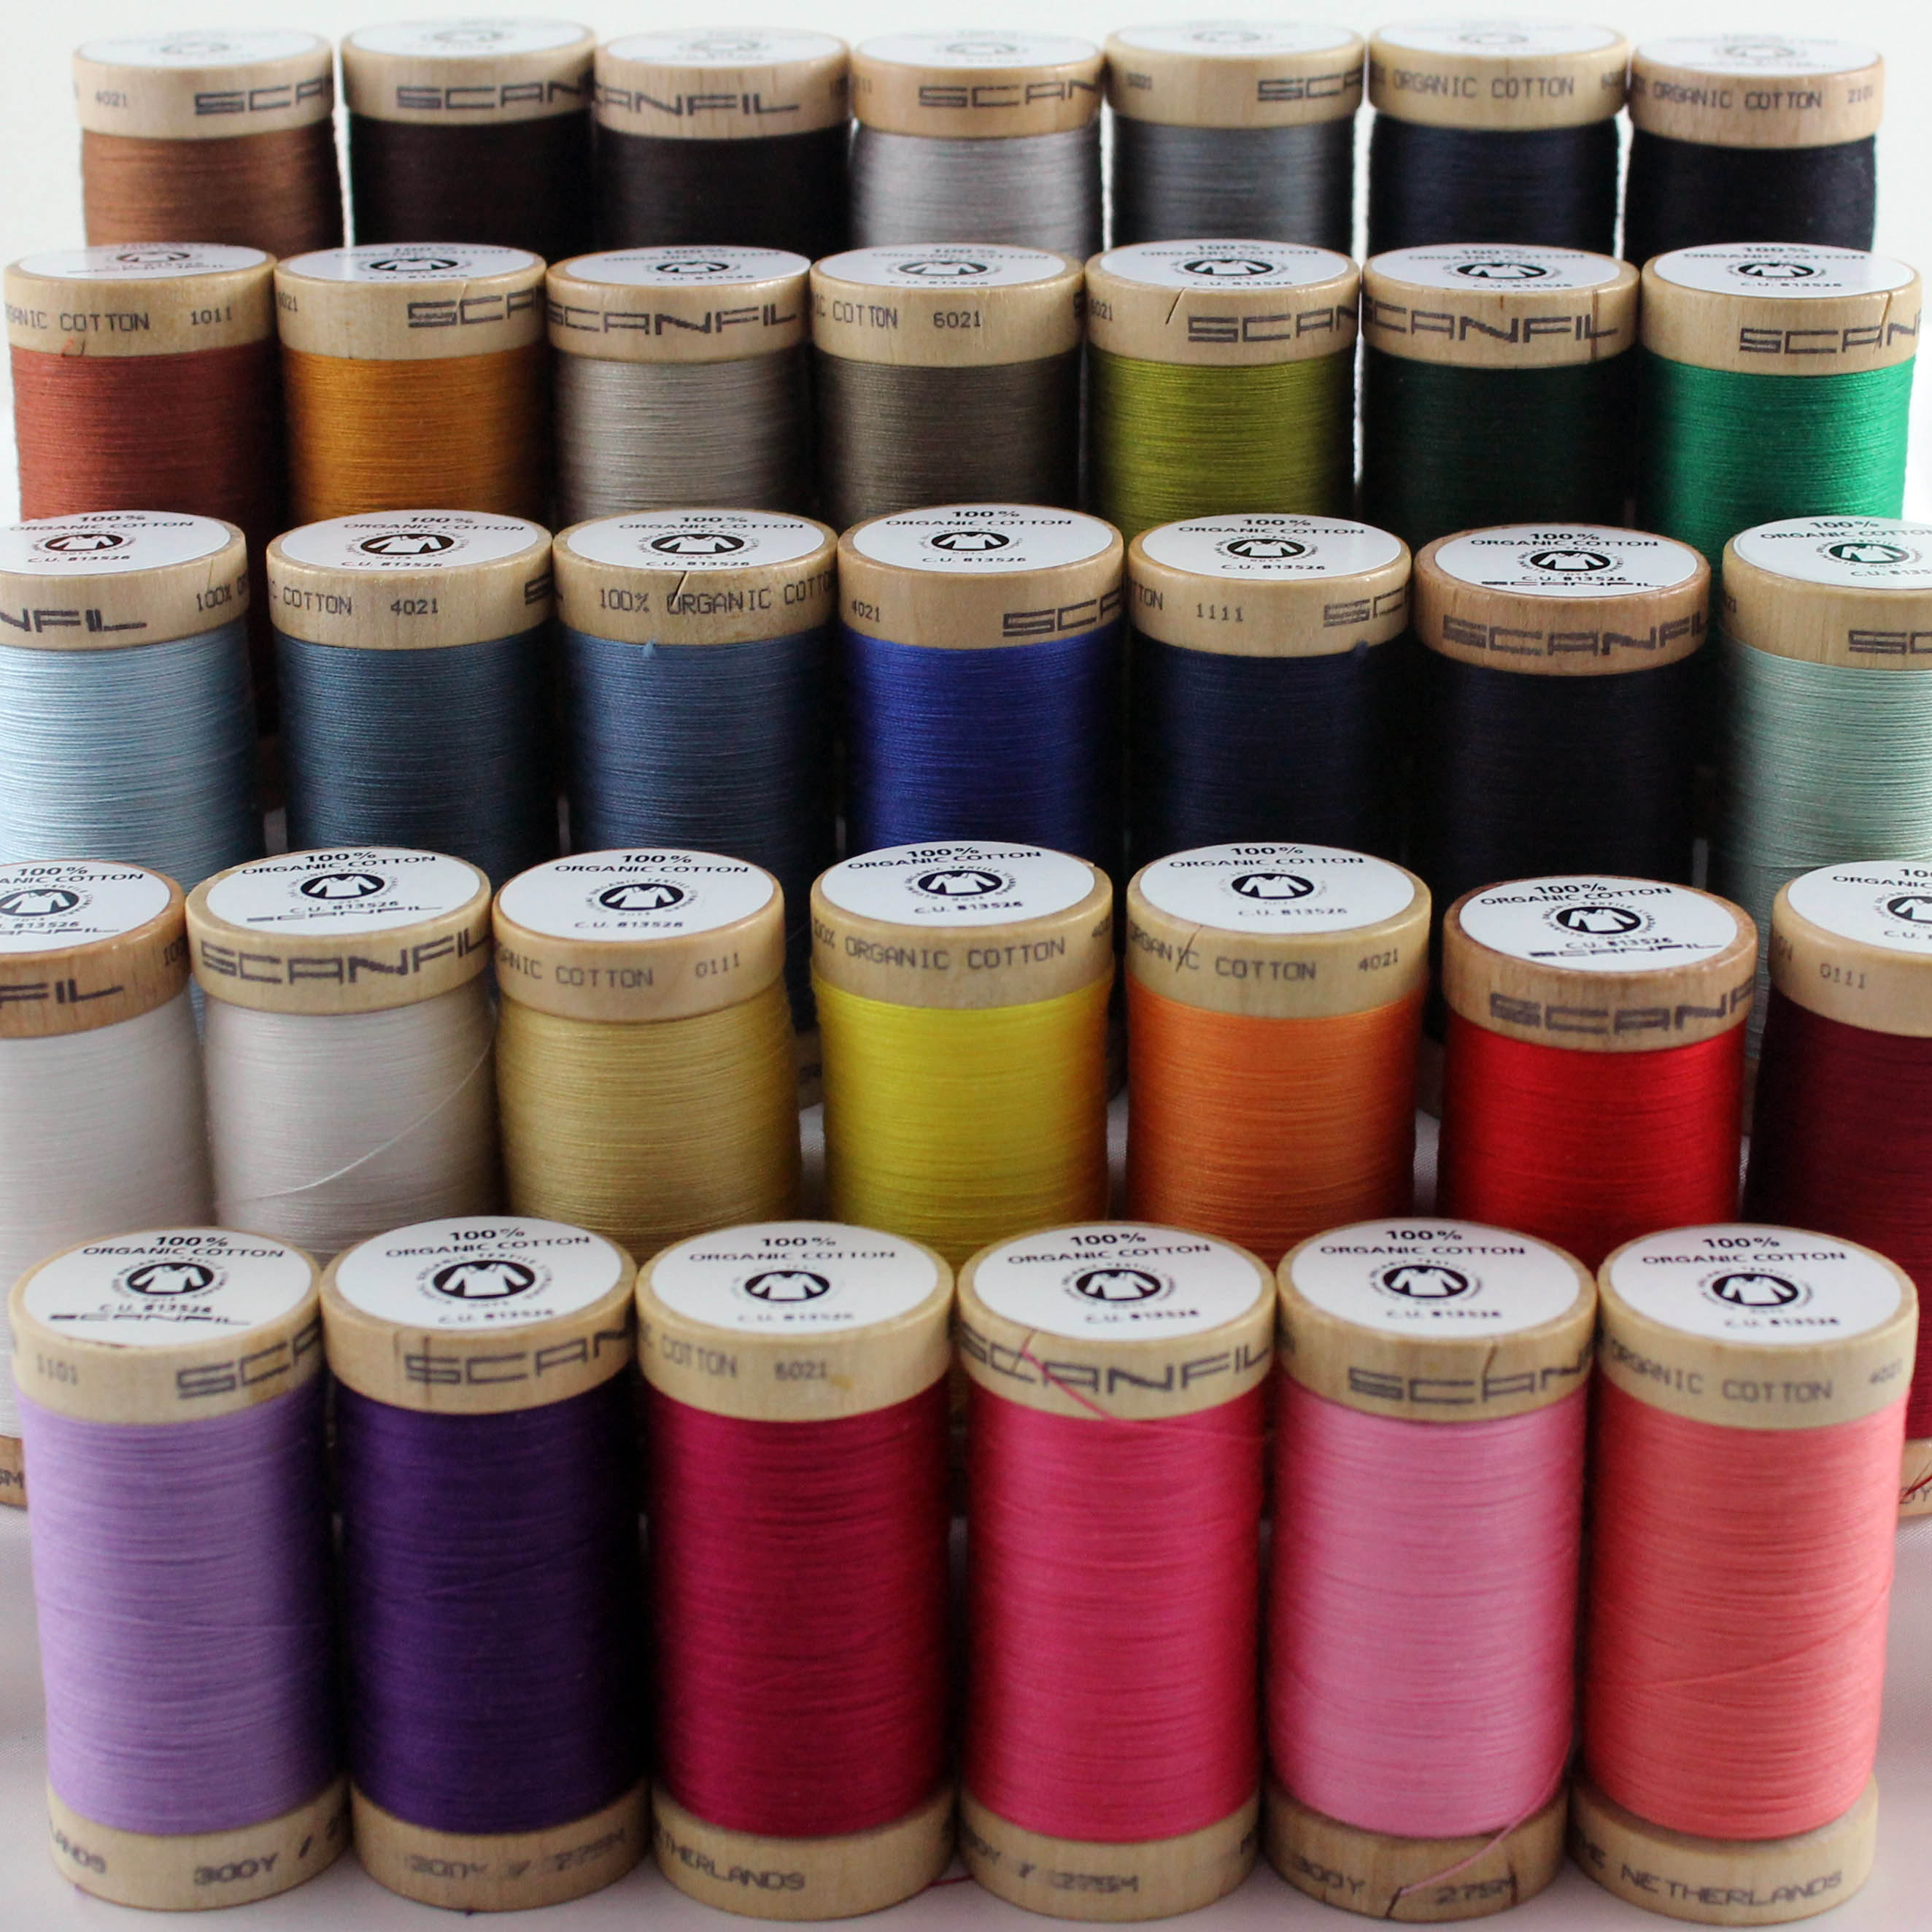 Emerald Green Organic Cotton Thread